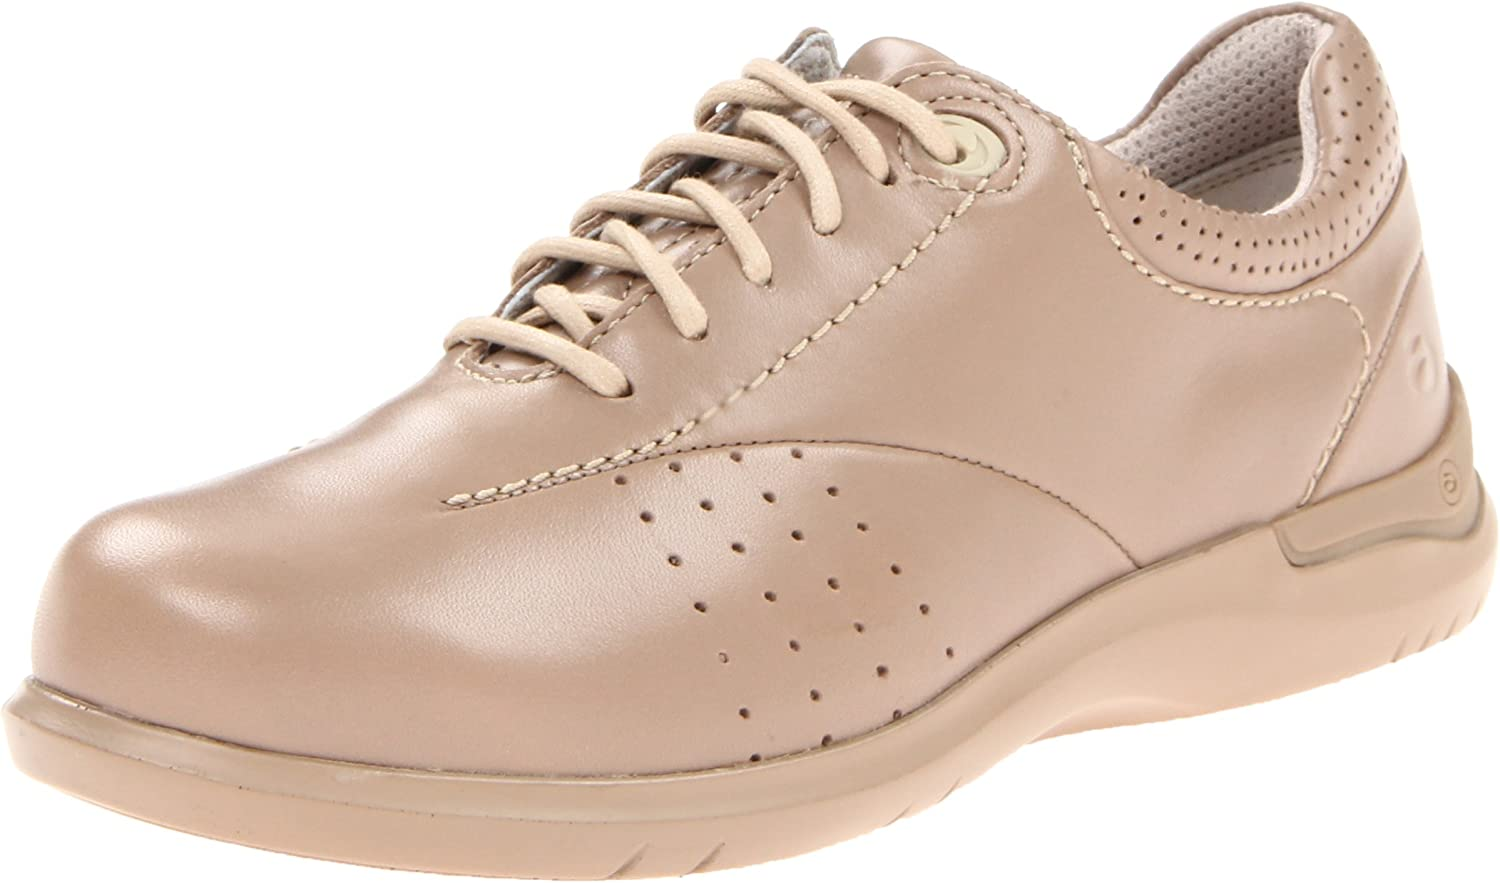 Aravon Women's Farren Lace-Up,Sand Leather,7.5